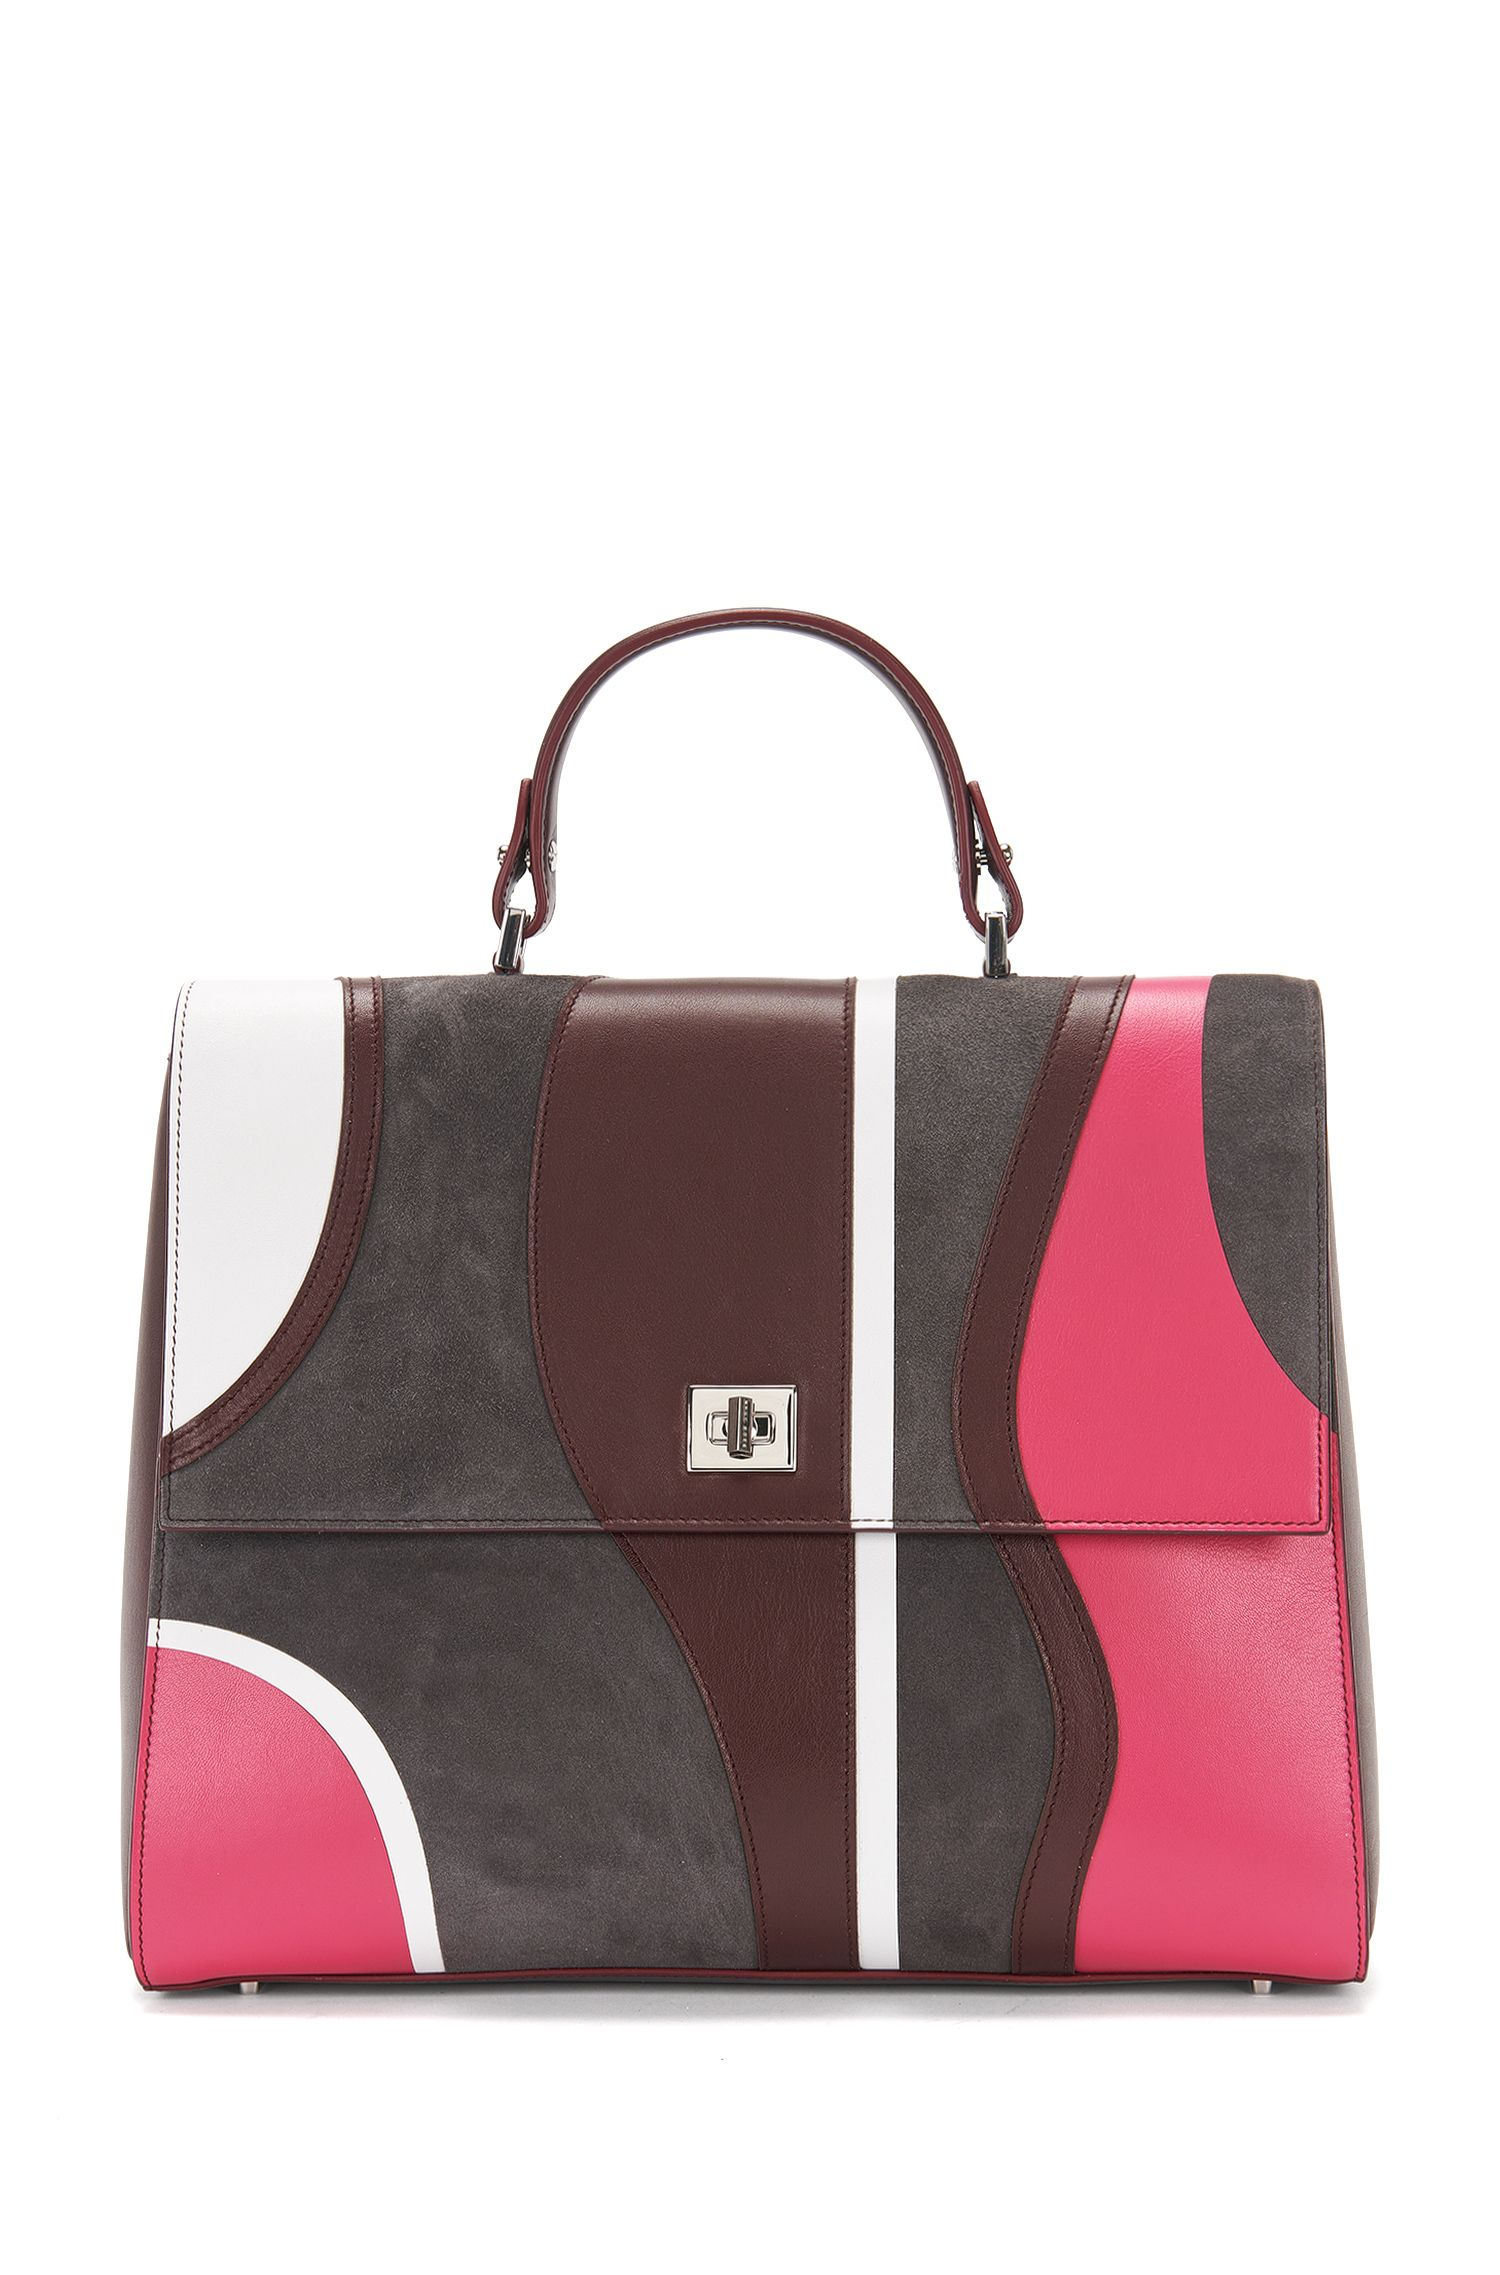 'BOSS Bespoke TH M-P' | Italian Leather Patchwork Handbag, Detachable Strap